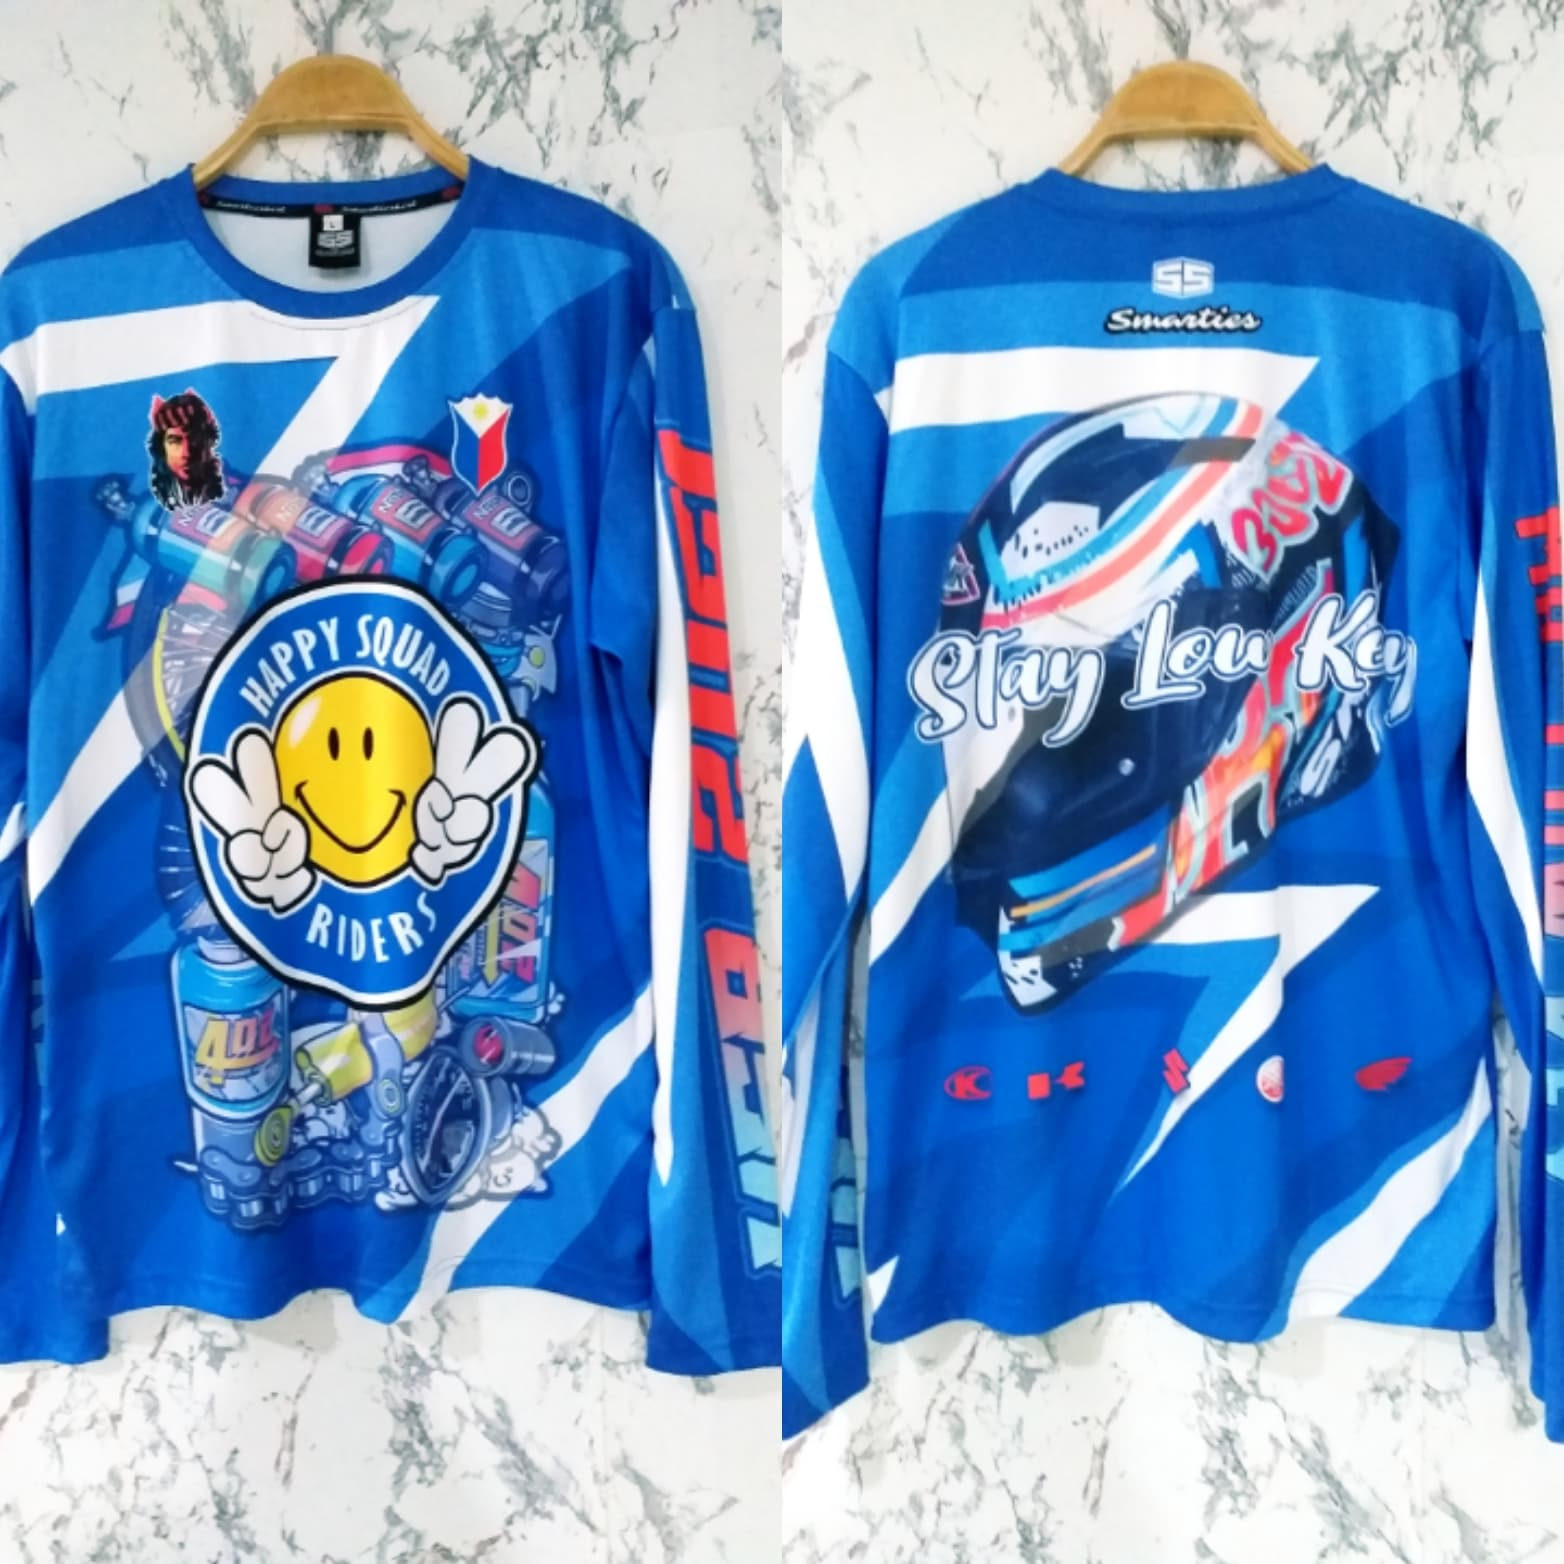 Philiprint Long Sleeves Shirt Full Sublimation Happy Squad Riders